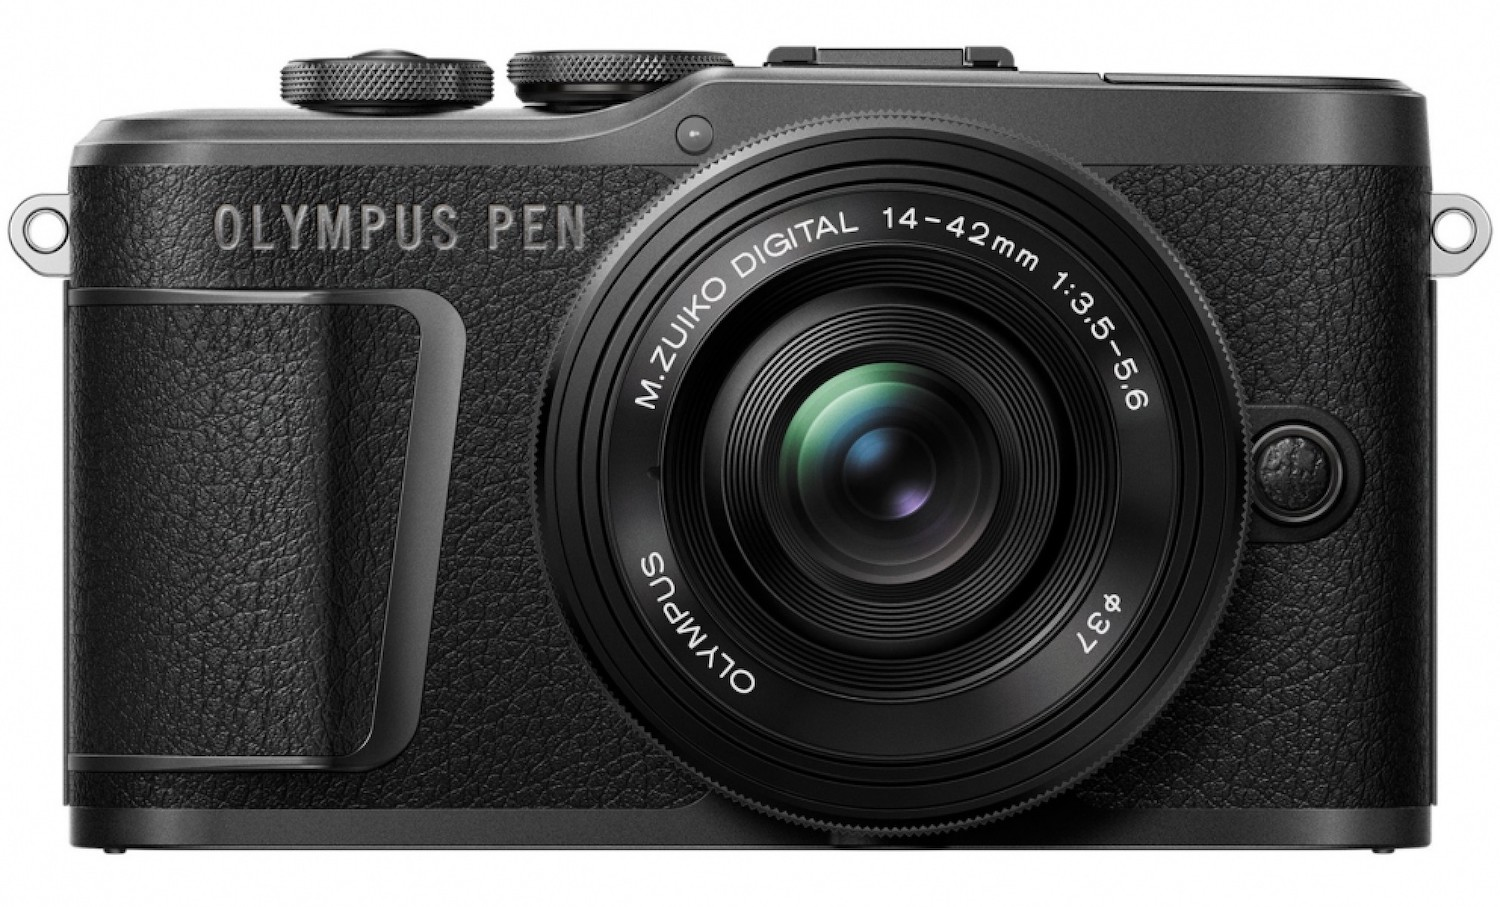 Best Camera for Street Photography Olympus PEN E-PL10